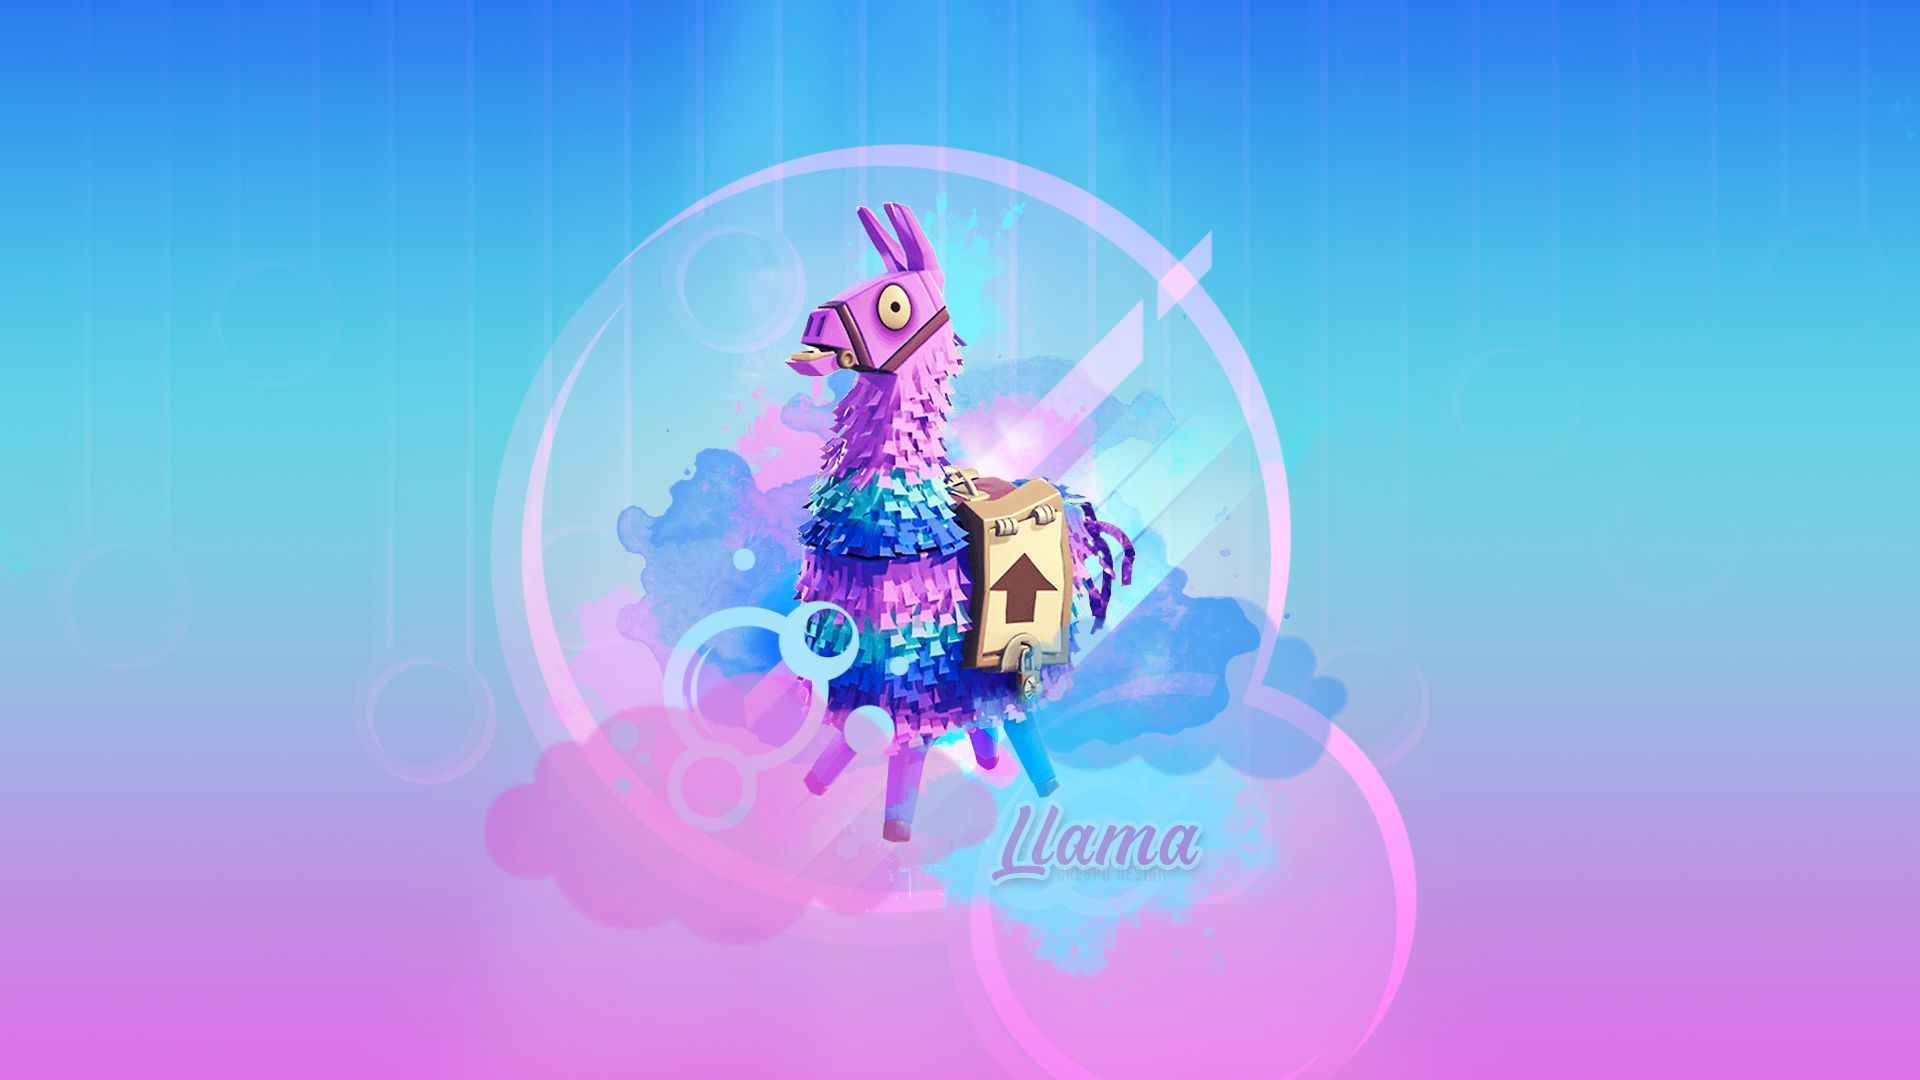 Fortnite lama wallpapers top free fortnite lama - Fortnite llama background ...